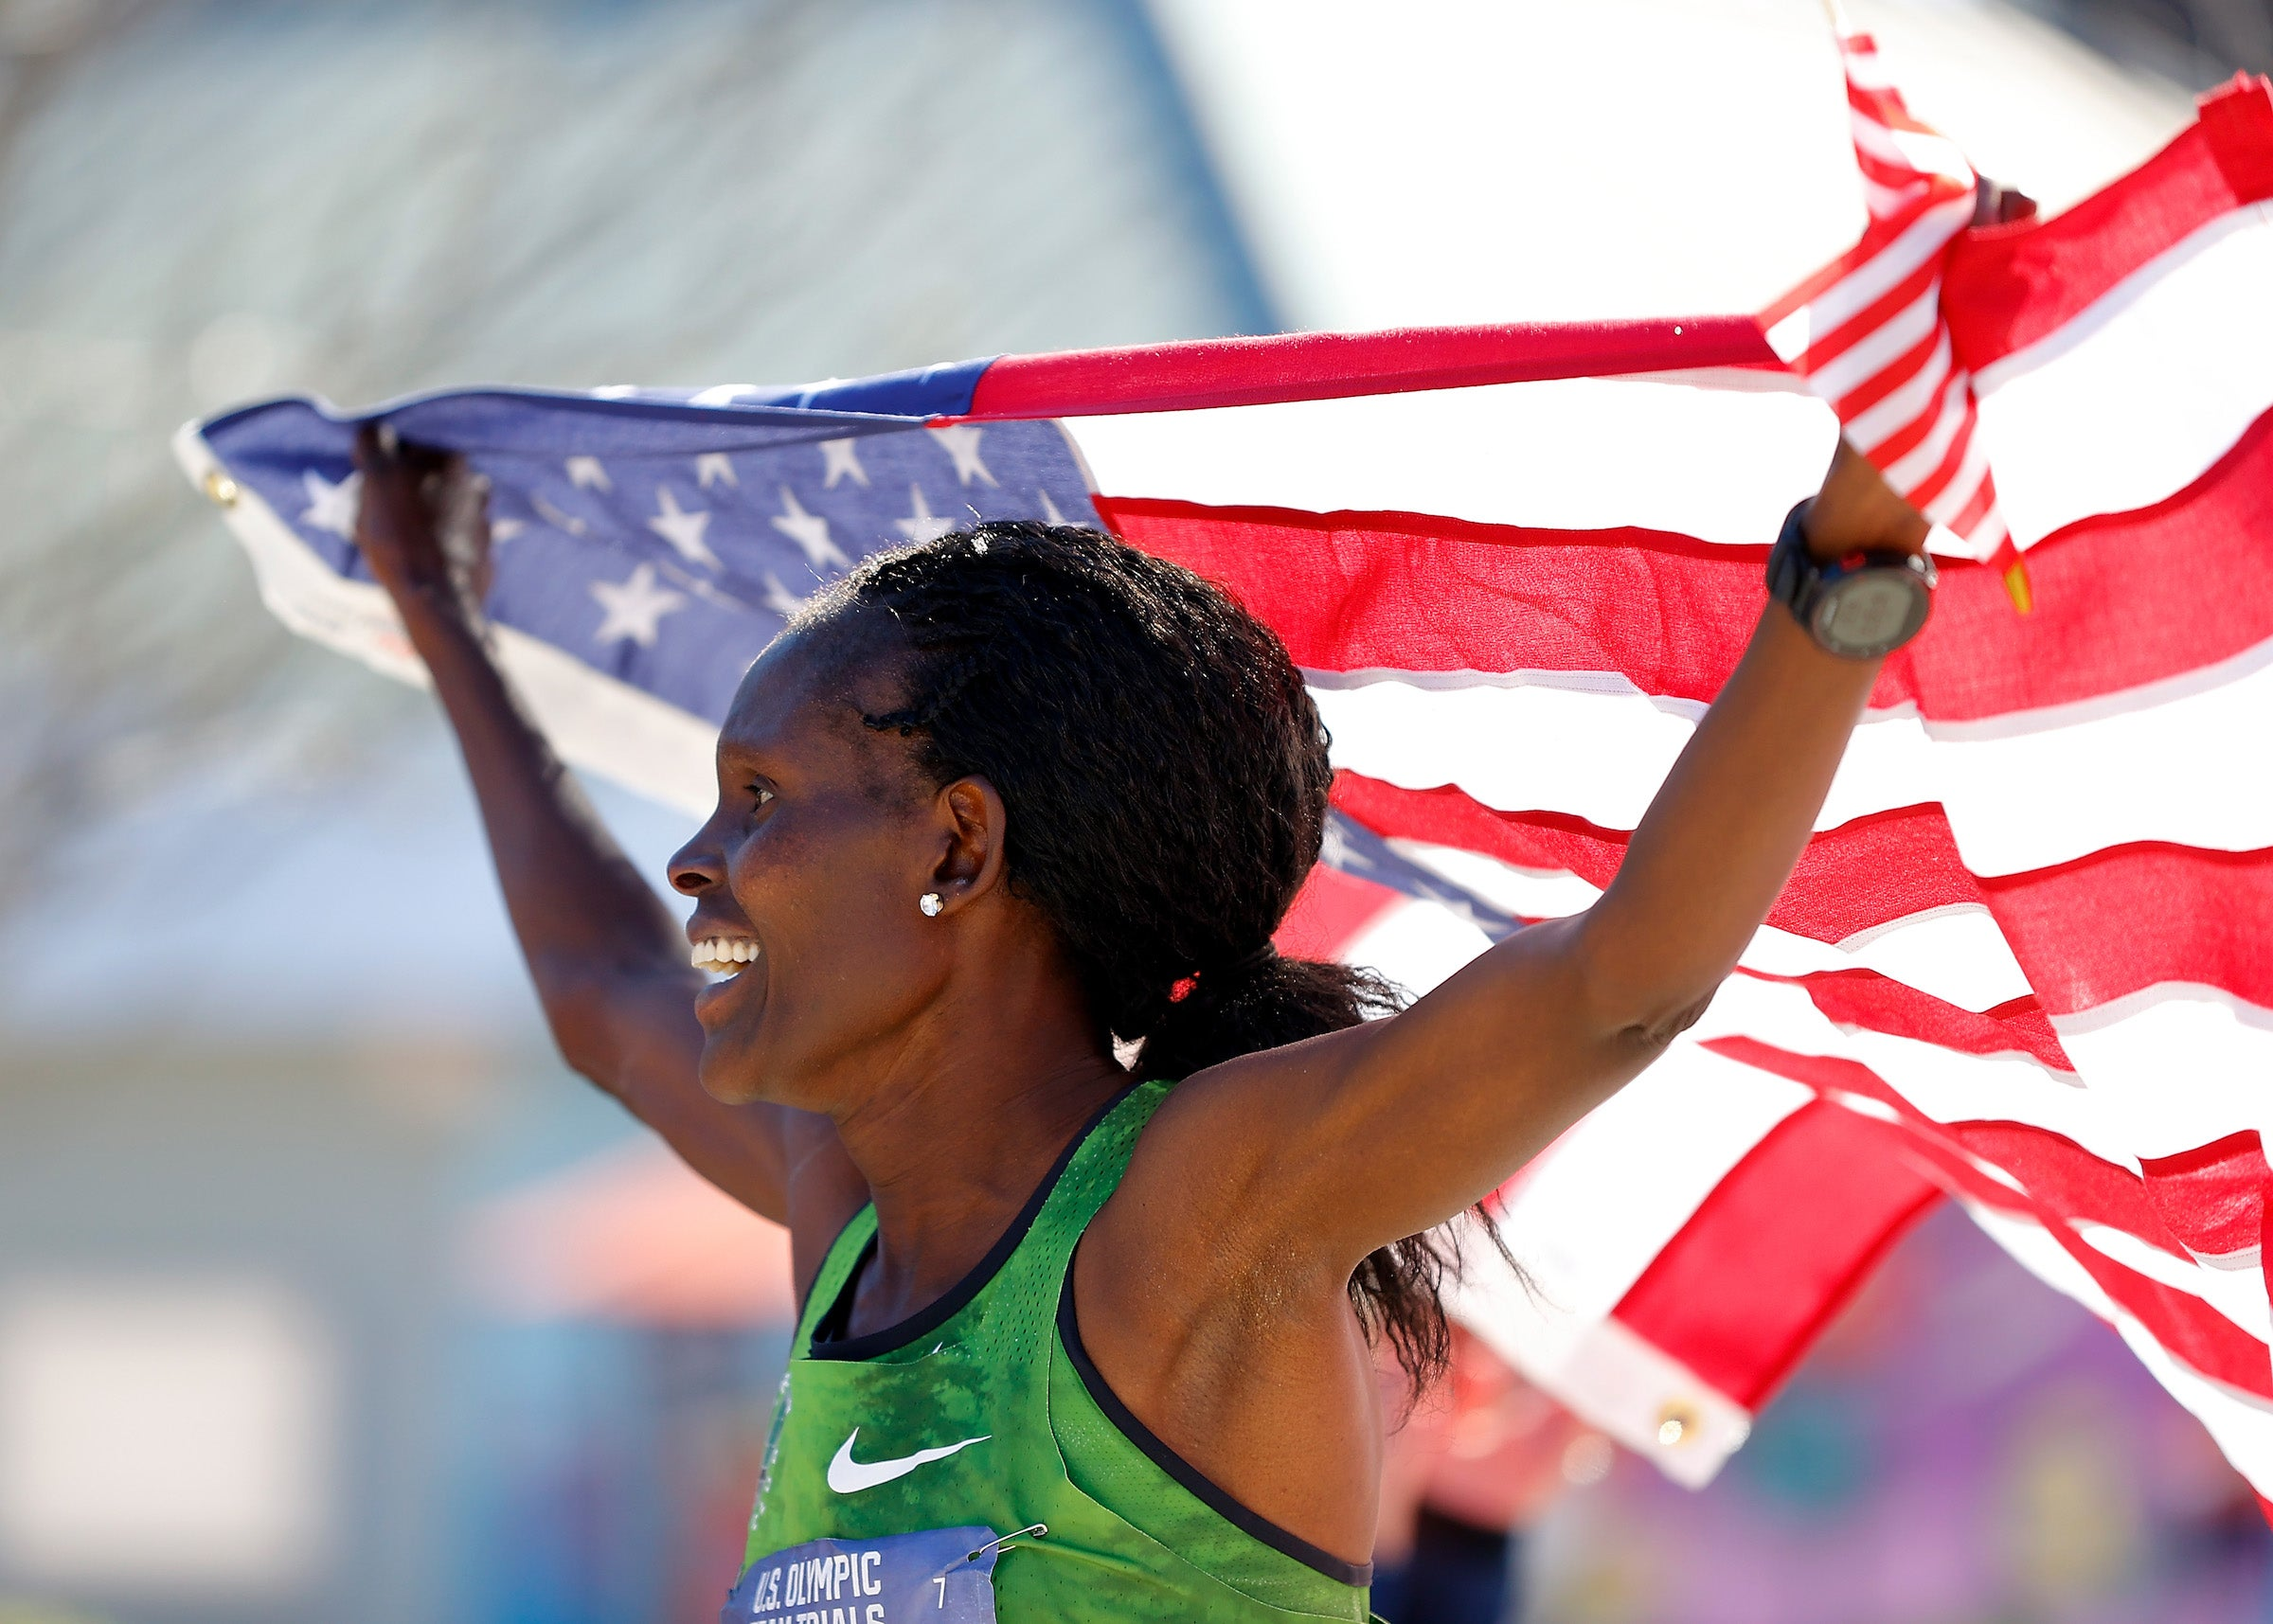 With Five Months Until Tokyo Olympics, Sally Kipyego Shares a Training Update